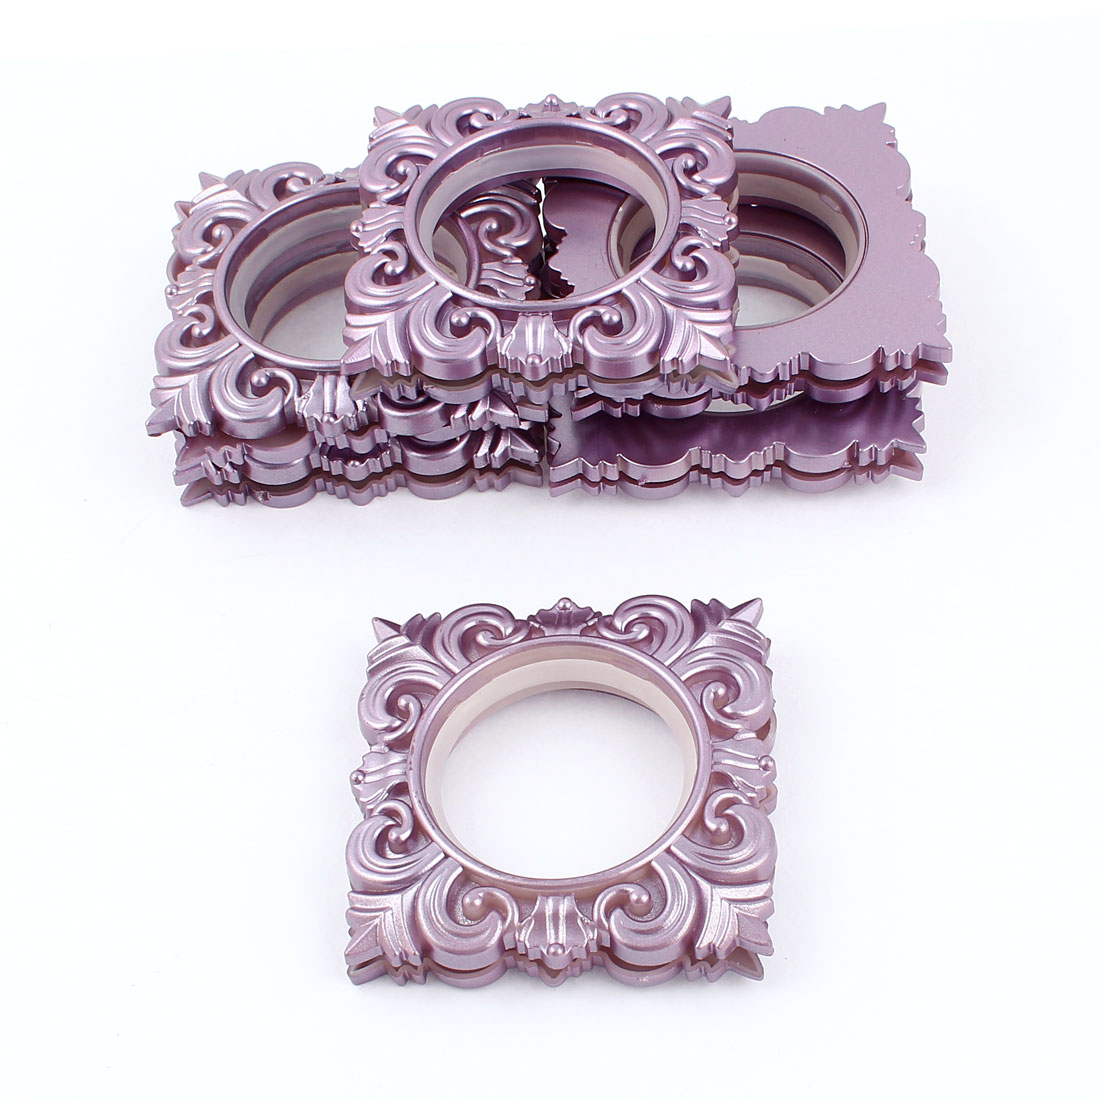 6 Pcs Square Rings Purple 45mm Inner Diameter for Eyelet Curtain